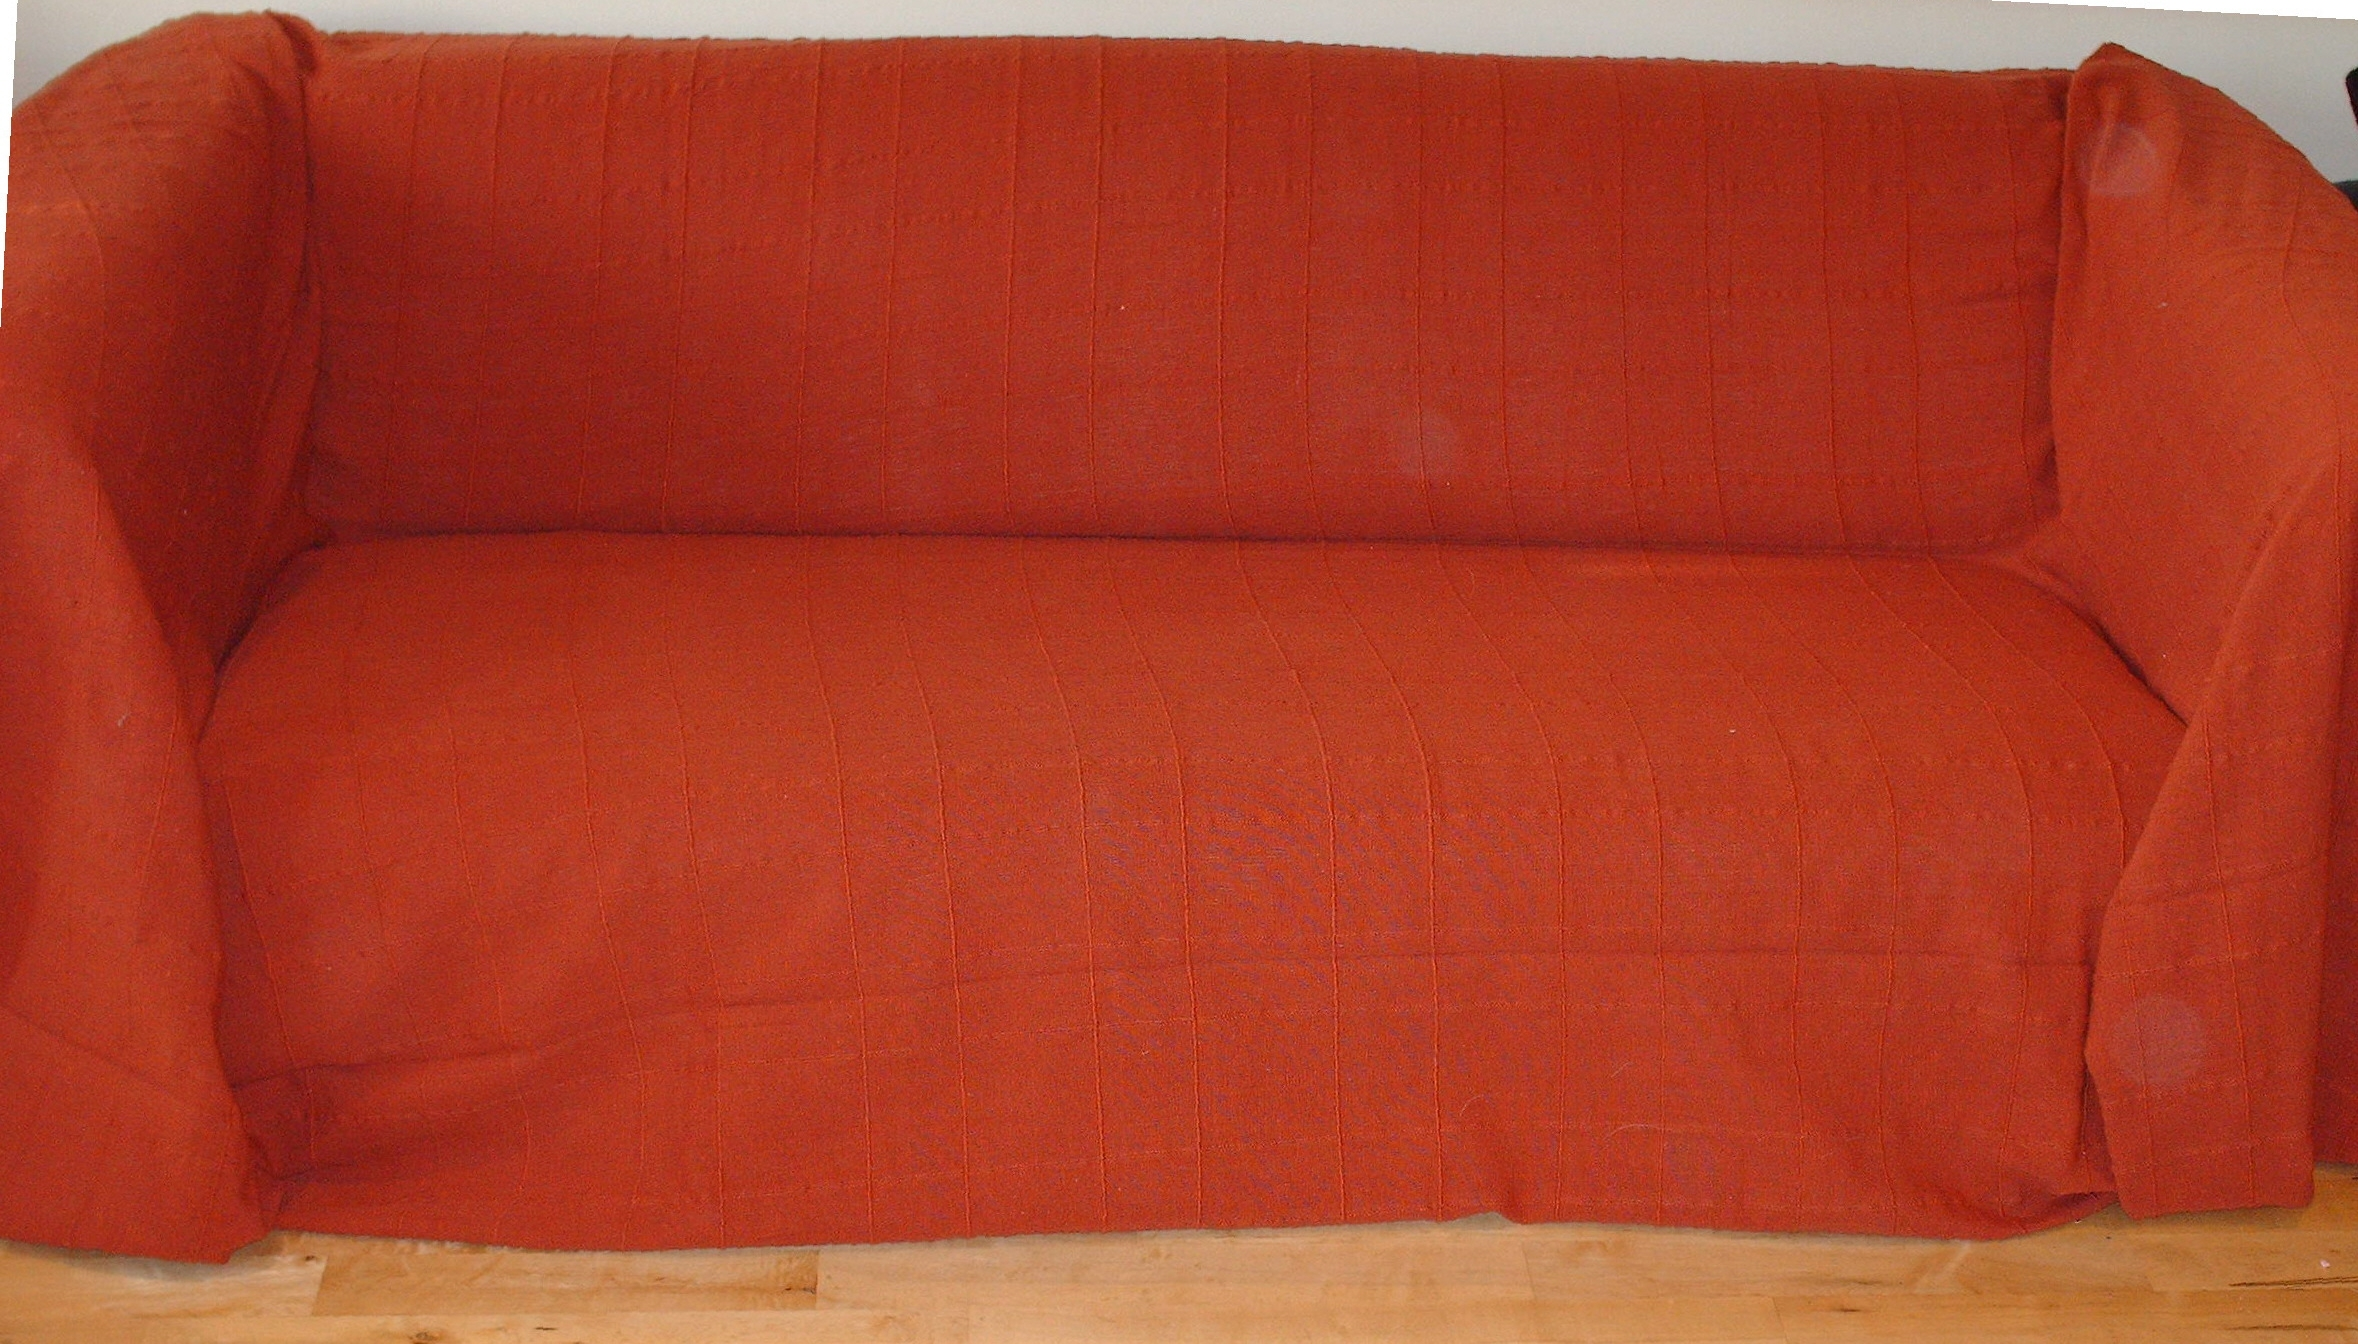 Decor Endearing Maximize Sofa Throws For Gorgeous Living Room Intended For Throws For Sofas And Chairs (Image 3 of 15)